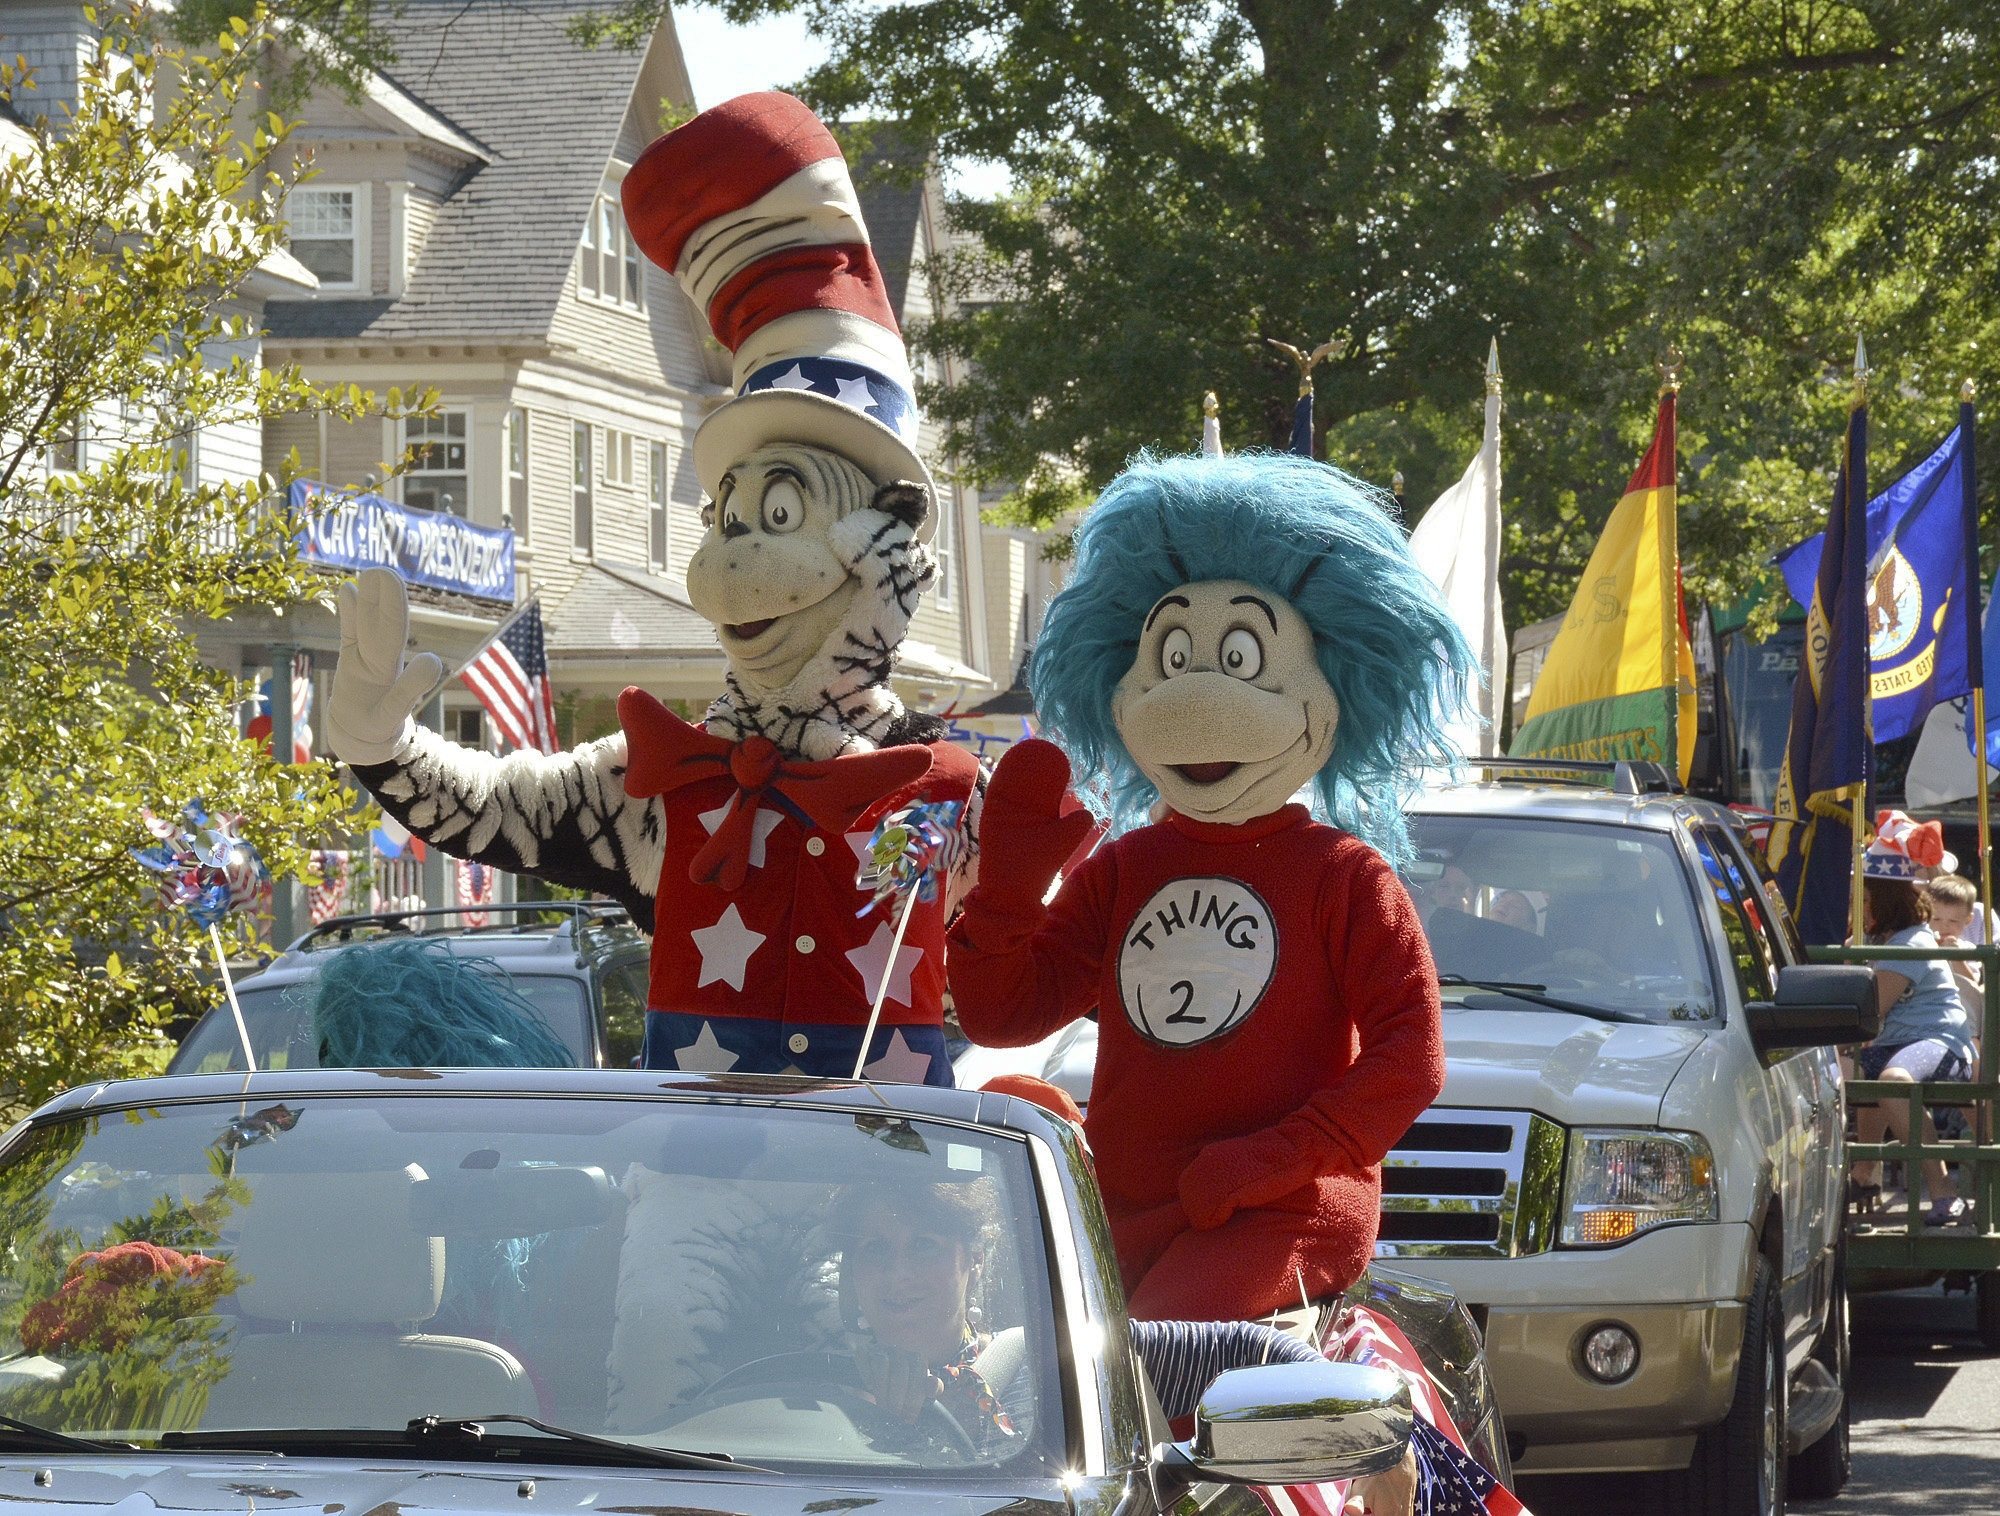 "A character portraying the Cat in the Hat parades with Thing 2, Tuesday, July 26, 2016, after he declared he is running for President with running mates Thing 1 and Thing 2, outside the childhood home of their creator Theodor Geisel, better known as Dr. Seuss, on Fairfield Street in Springfield, Mass. The event served as the official launch for the new Random House book ""One Vote, Two Votes, I Vote, You Vote."" Photo by Dave Roback/The Republican via AP; St. George News"